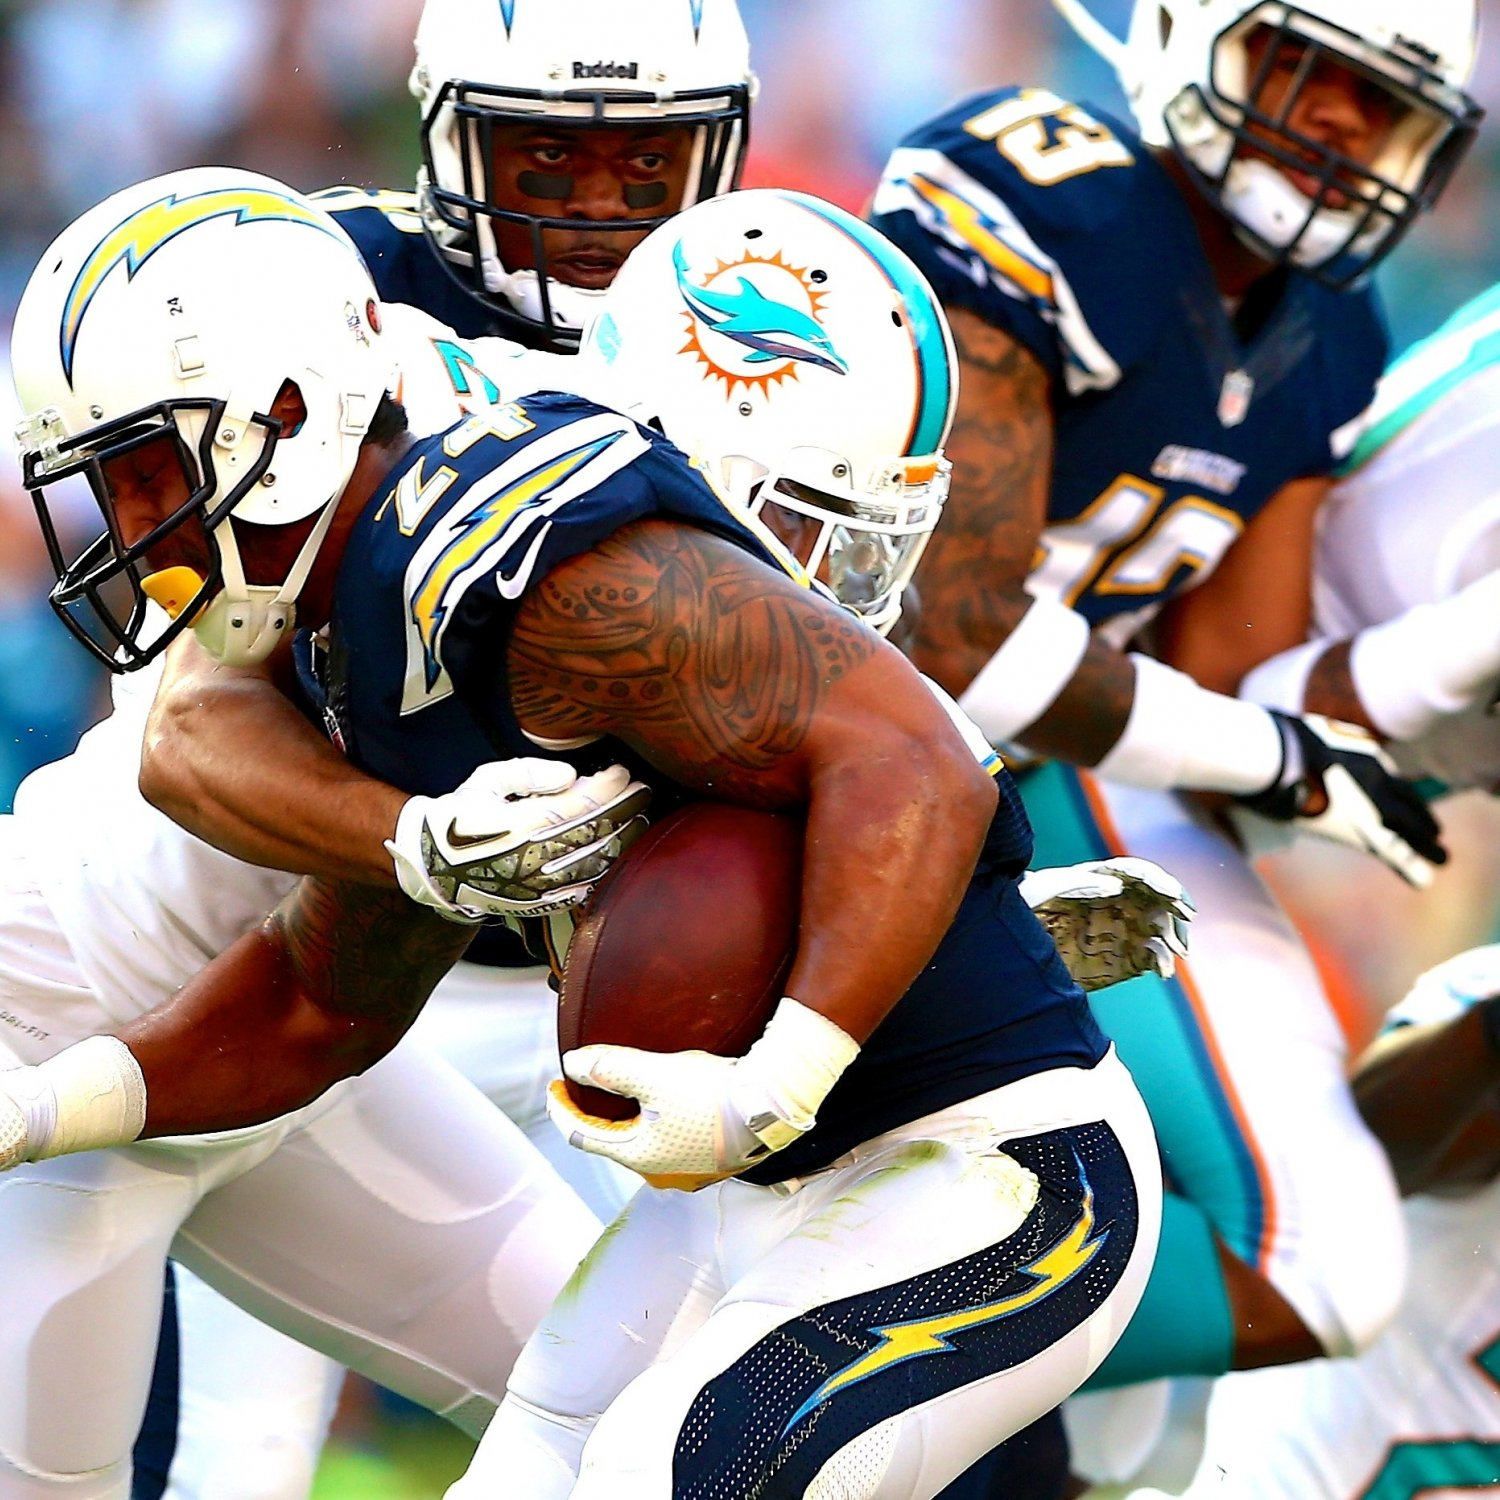 San Diego Chargers Current Score: San Diego Chargers Vs. Miami Dolphins: Live Score